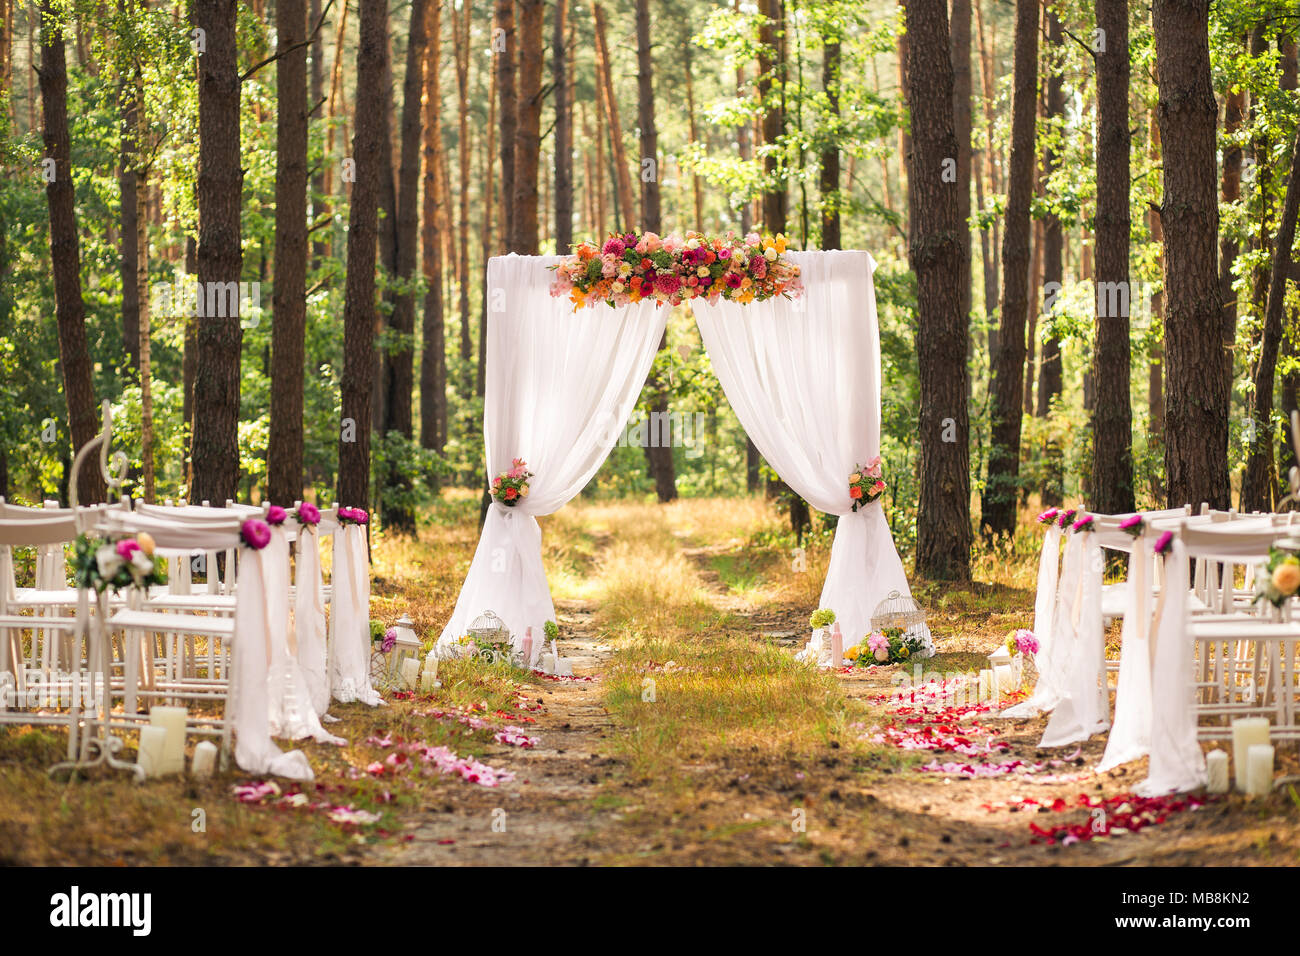 Beautiful Elegant Wedding Decorations Of Place For Ceremony Outside In Old Wood With Huge Pines Trees Horizontal Color Picture